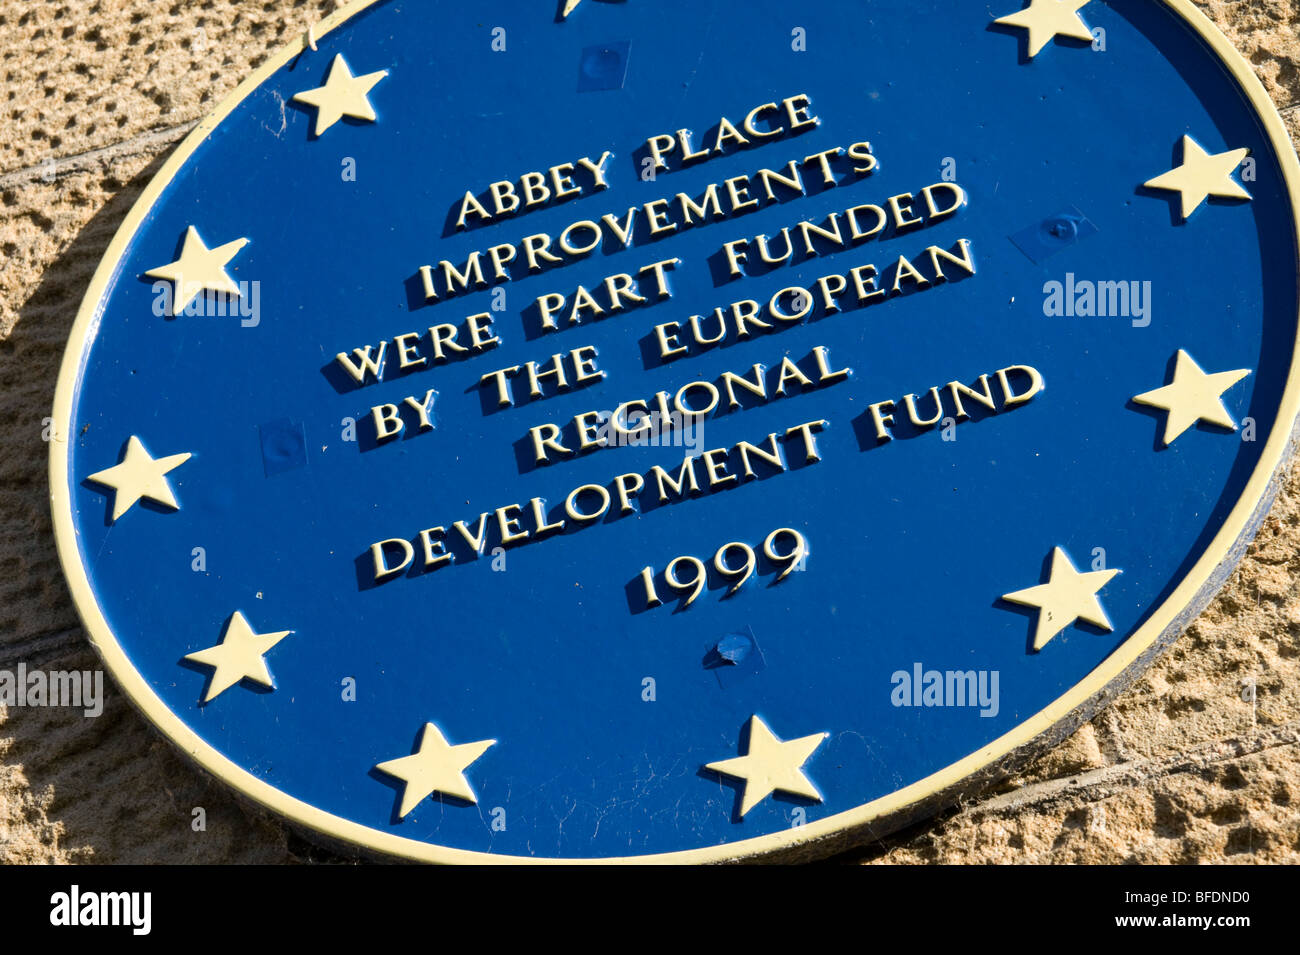 European funding wall plaque in Scotland - Stock Image